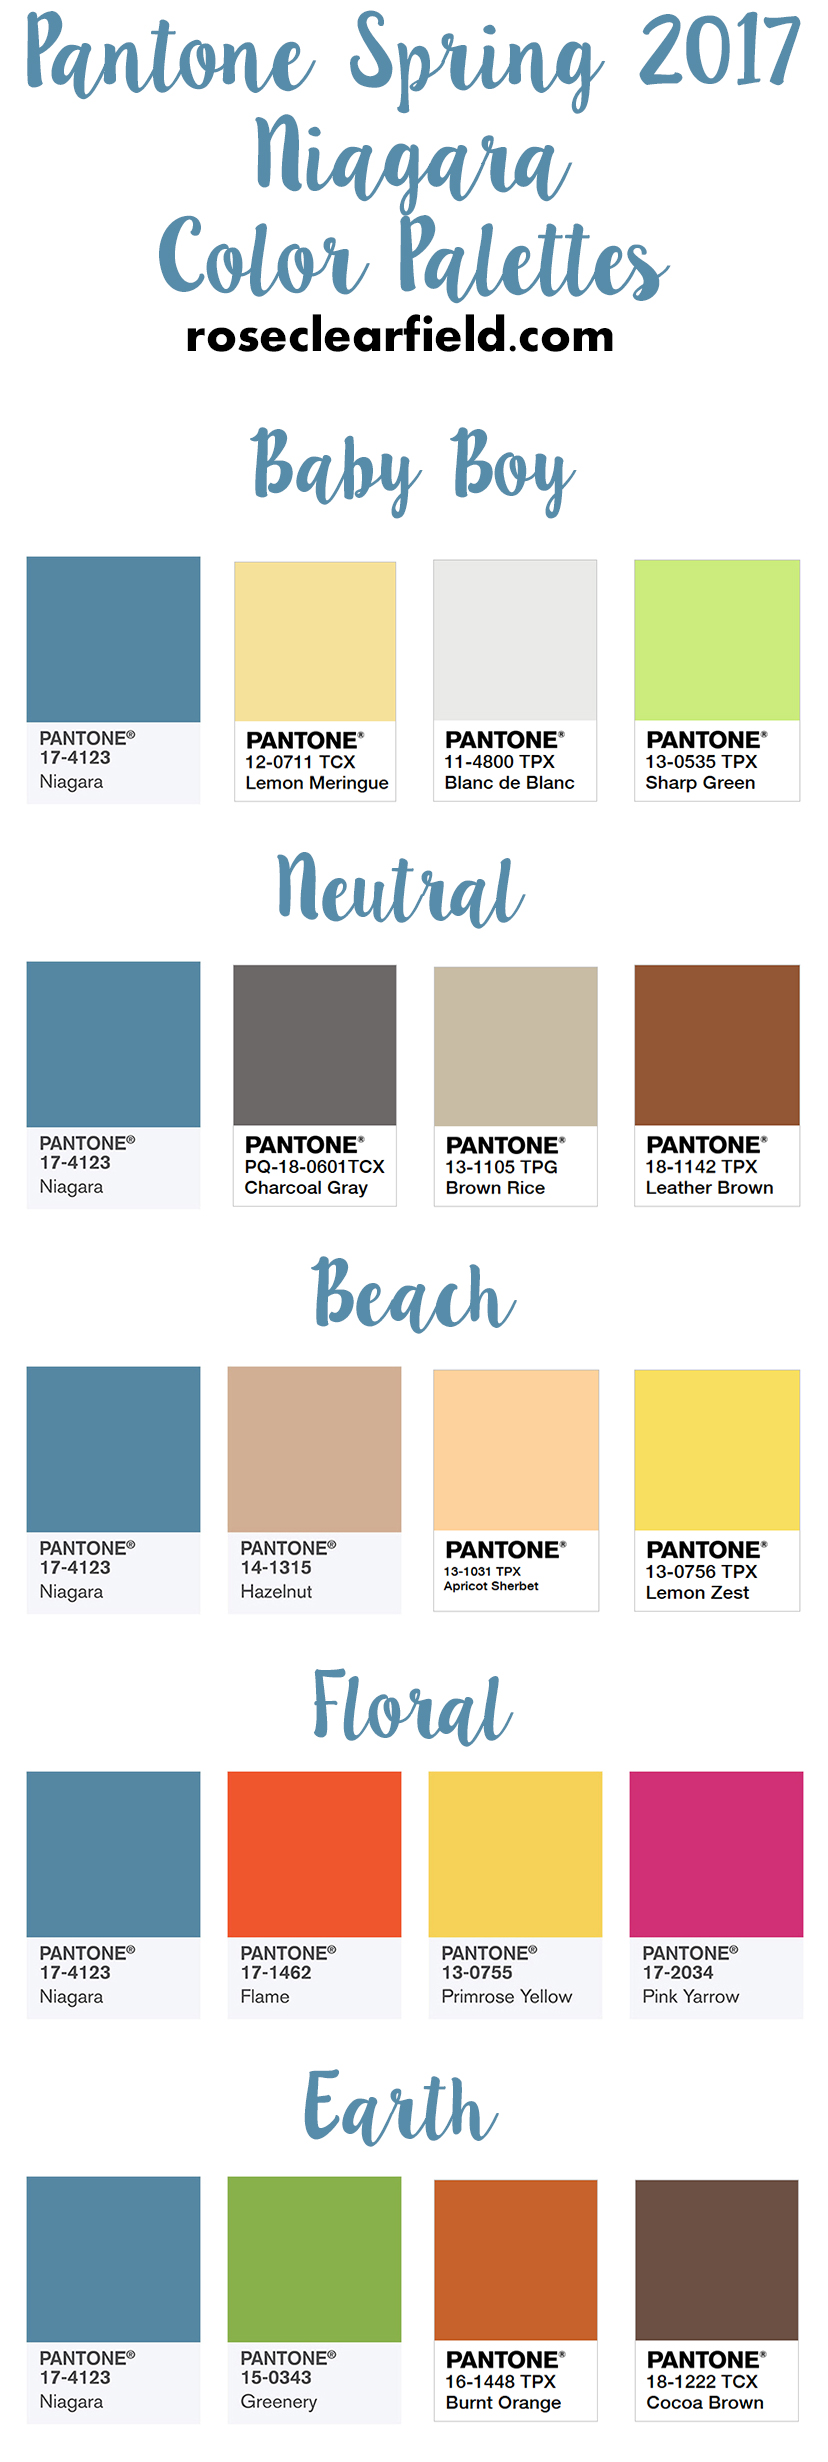 Pantone Spring 2017 Niagara Color Palettes | https://www.roseclearfield.com